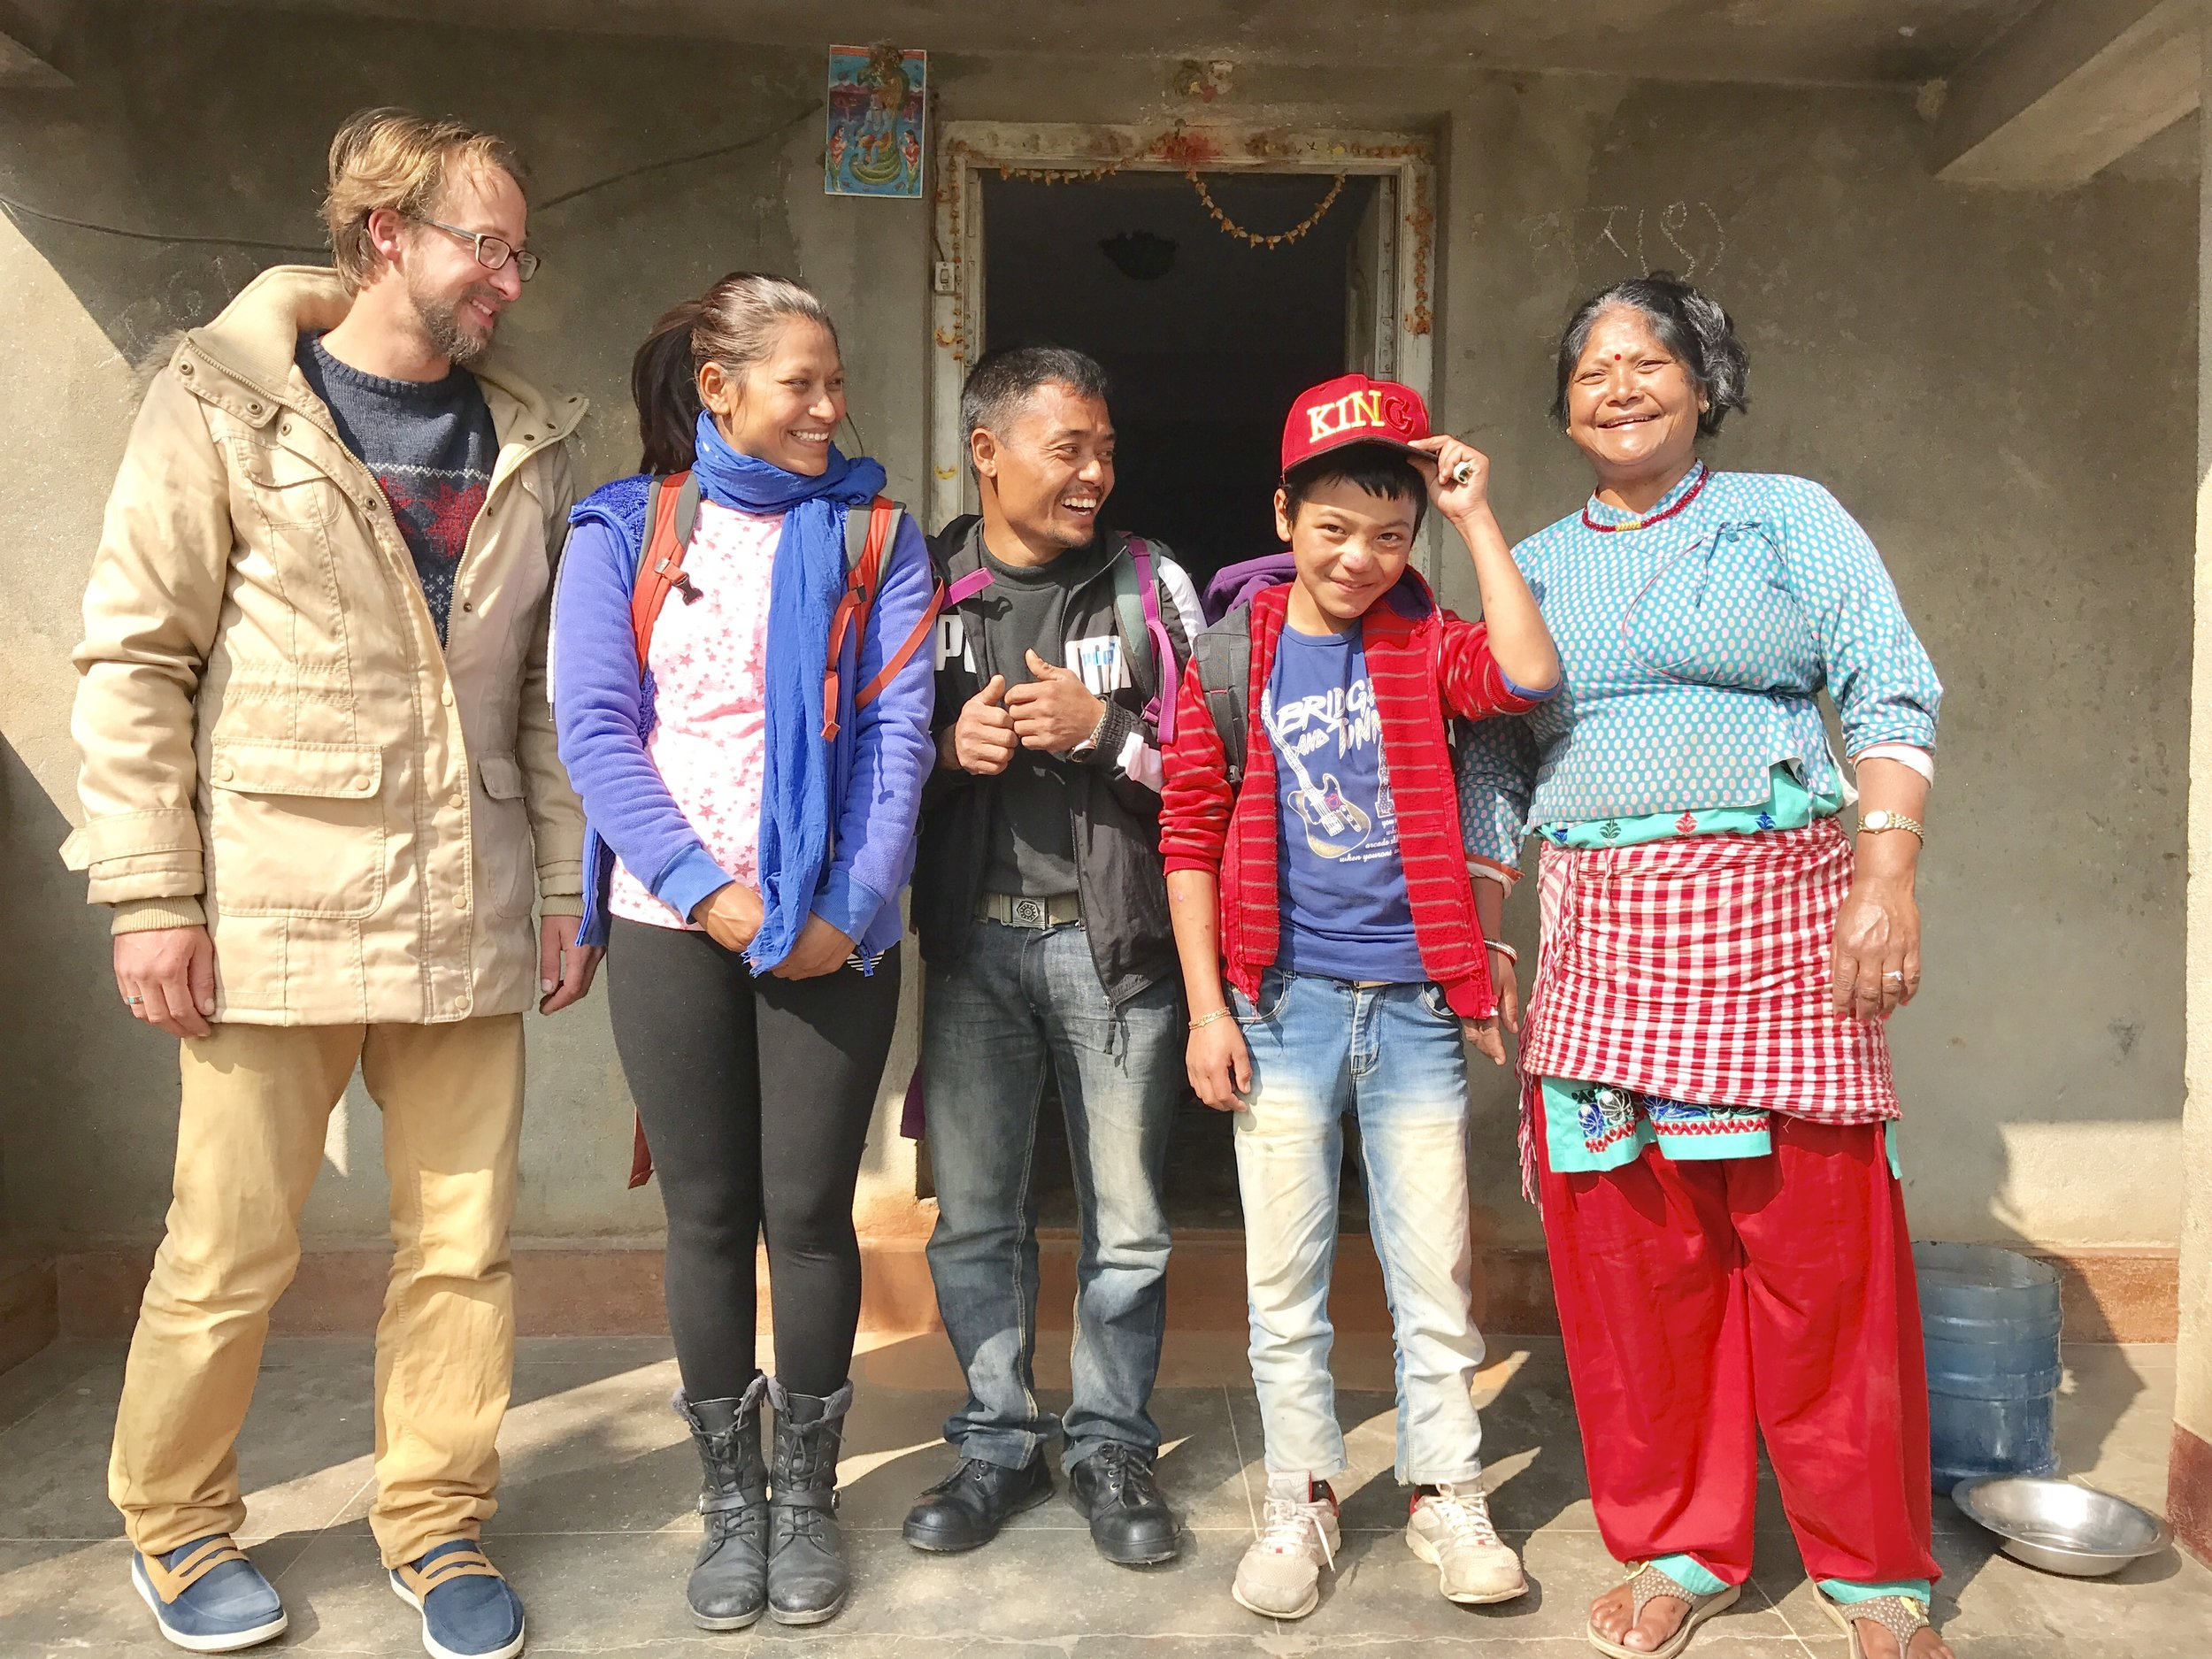 All dealing exited Malaki recovered so greatly after a week in Kathmandu.